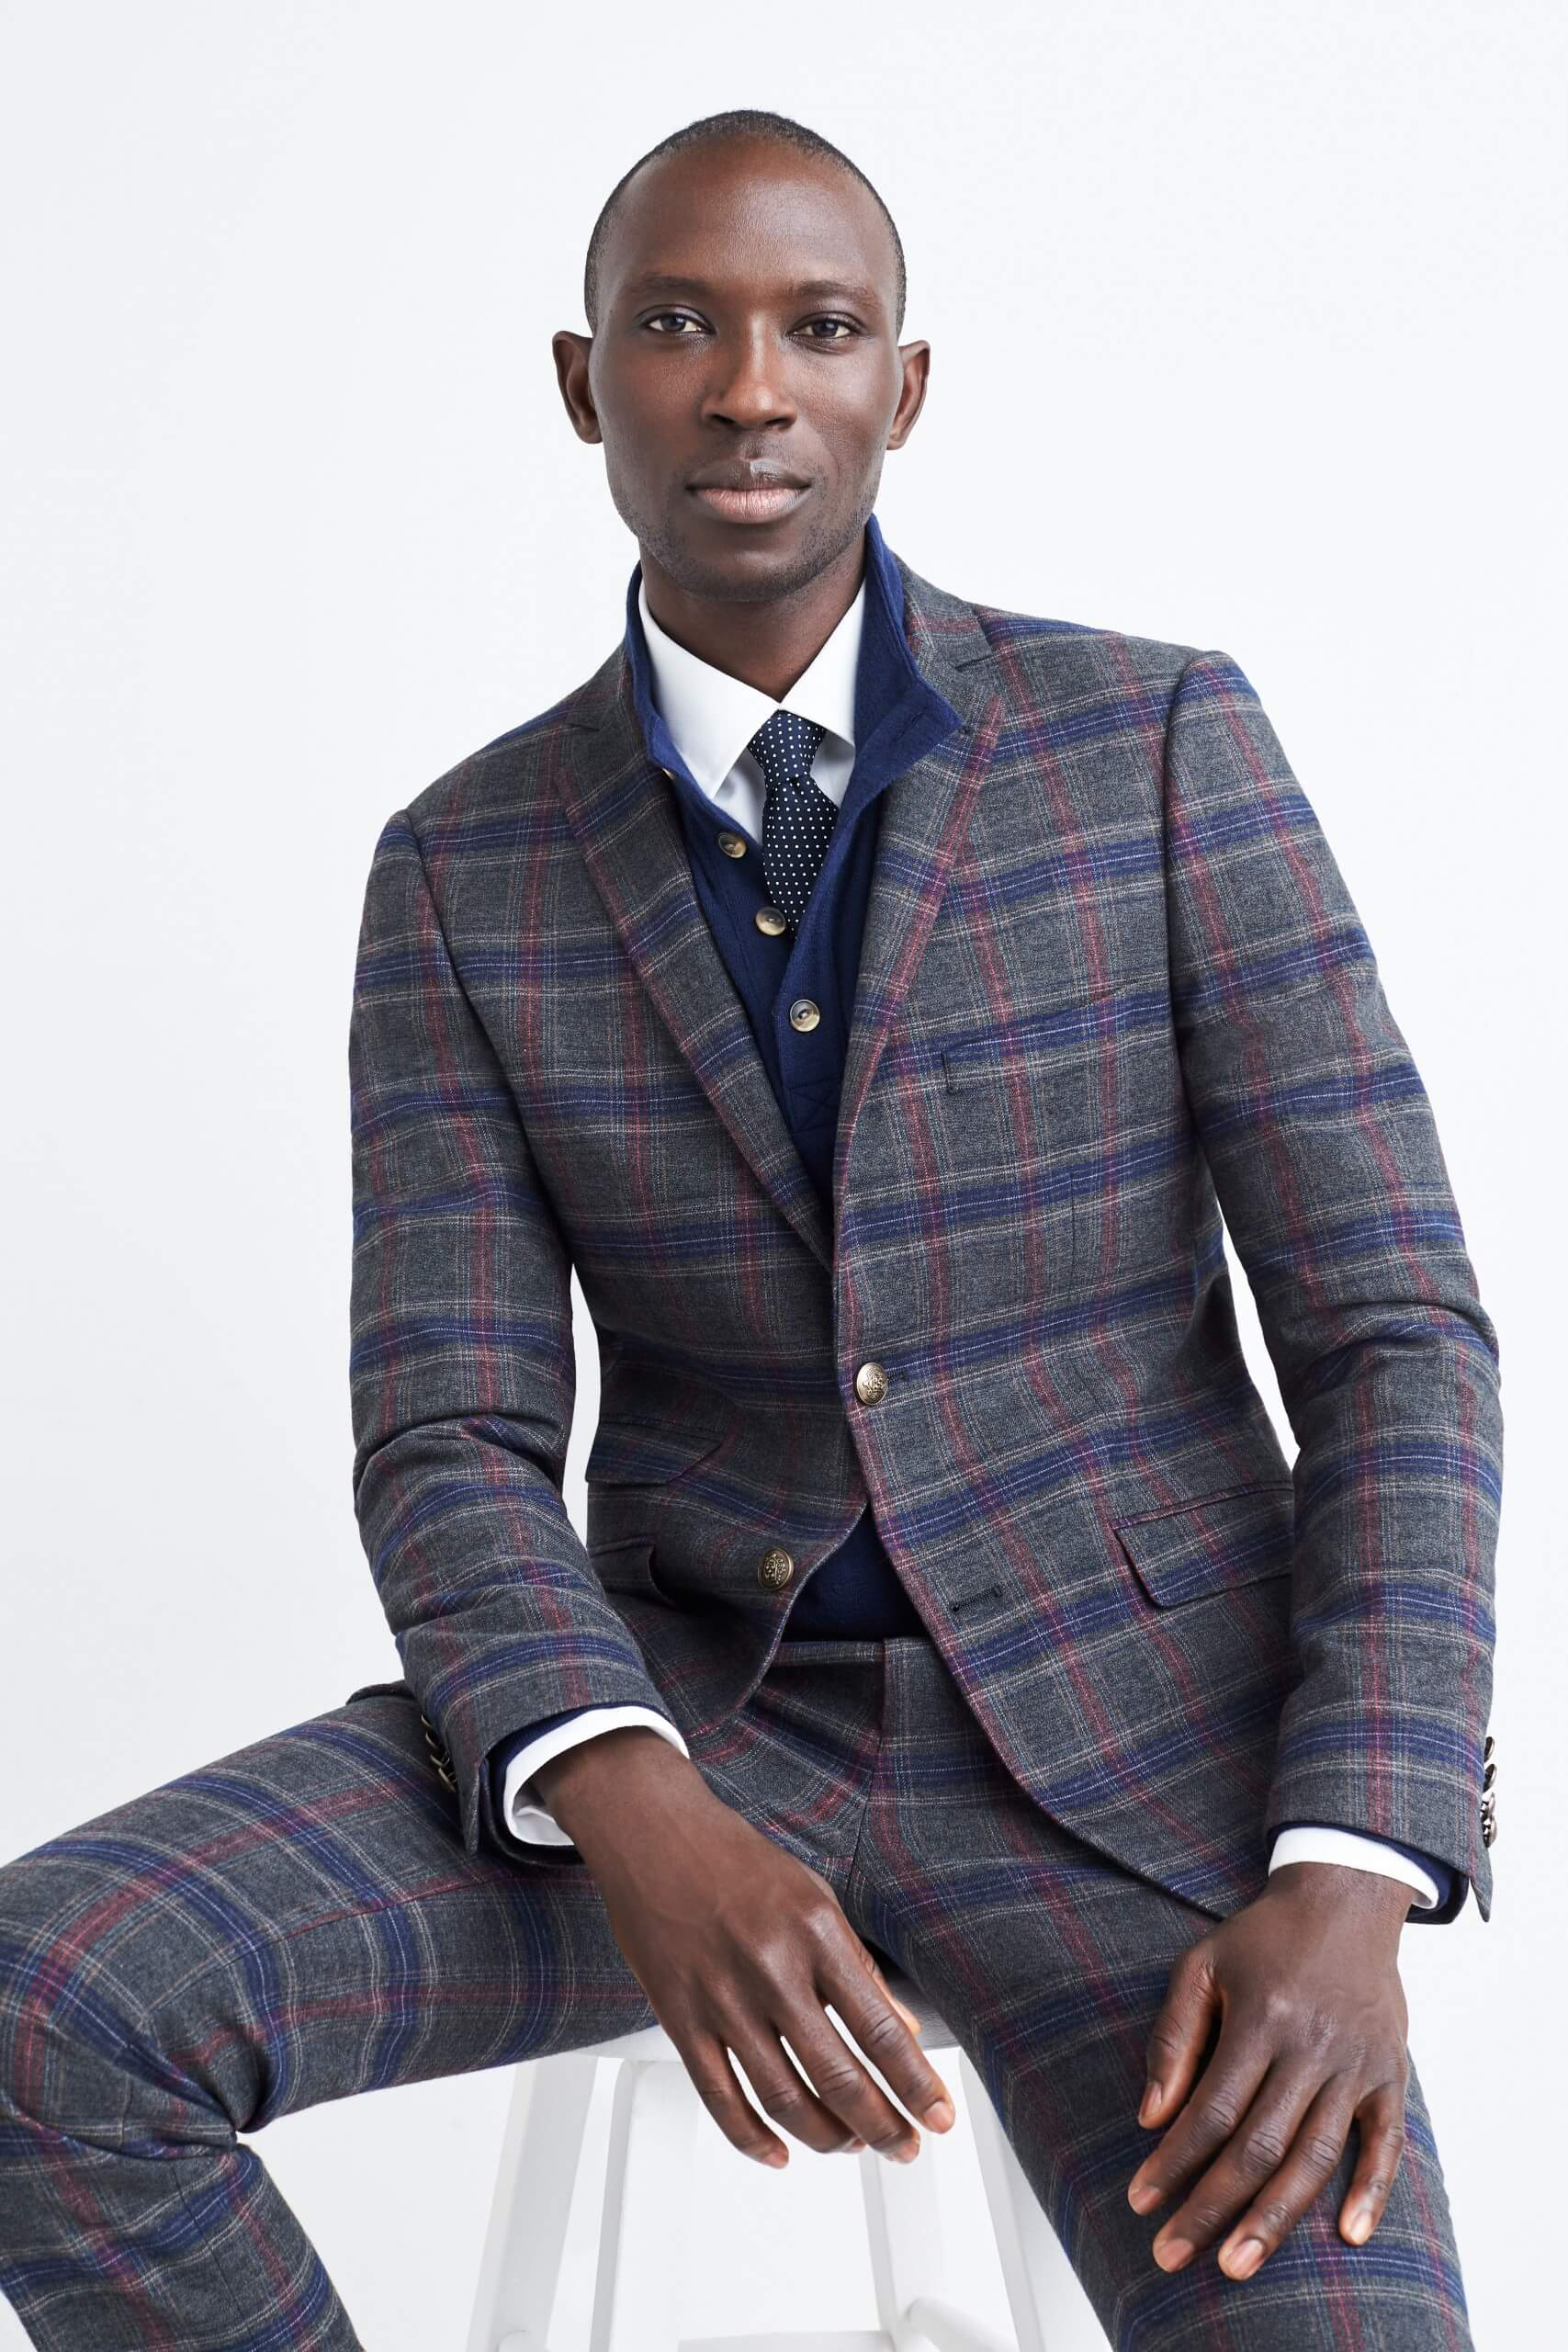 Stitch Fix Men's model sitting on a white stool wearing a navy plaid suit, white collared shirt and navy blue tie.